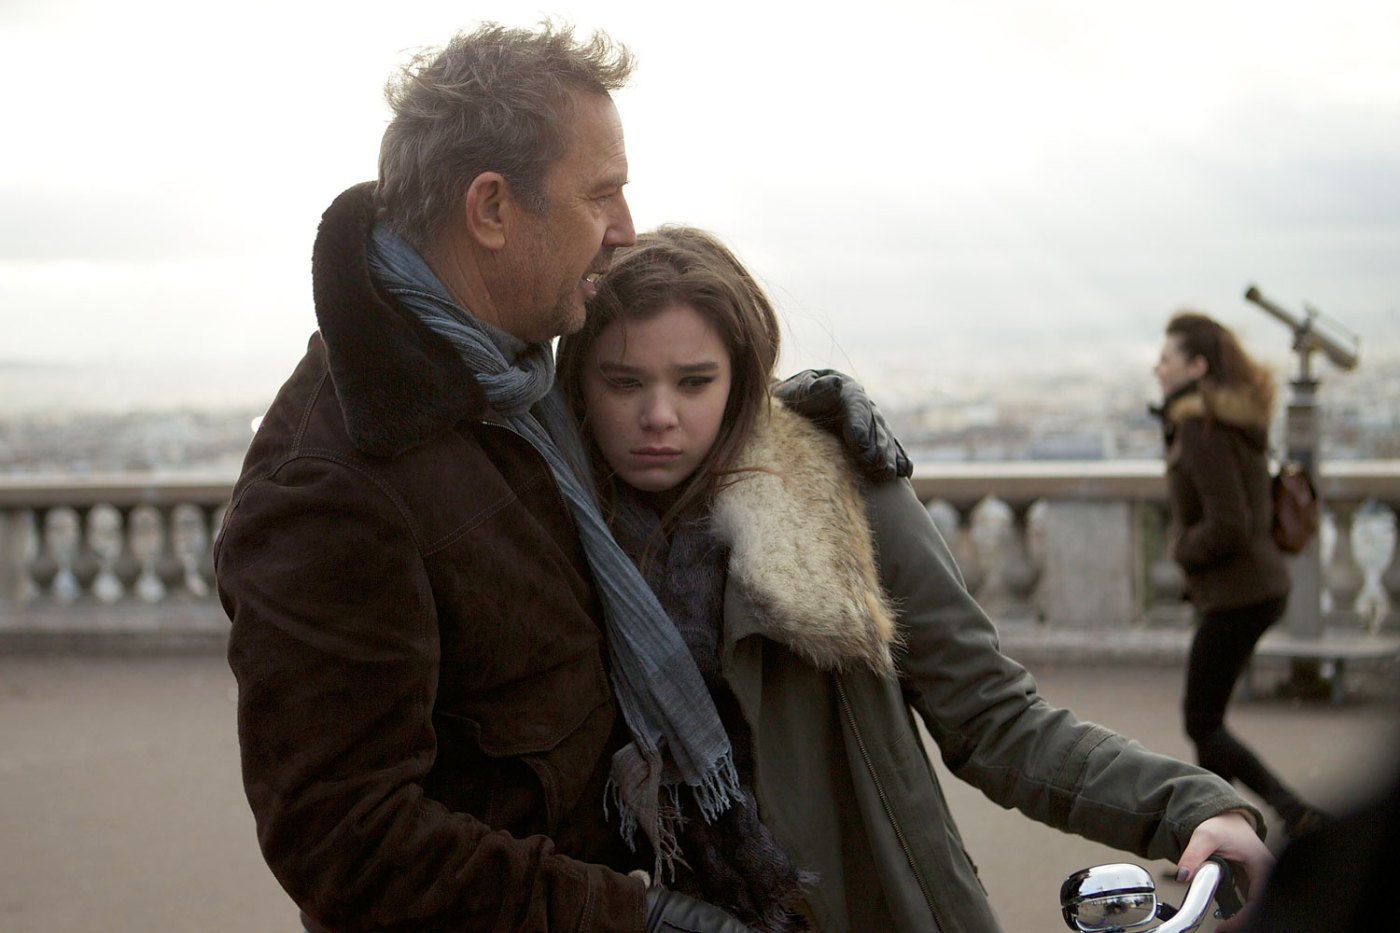 Kevin Costner and Hailee Steinfeld star in 3 Days to Kill.